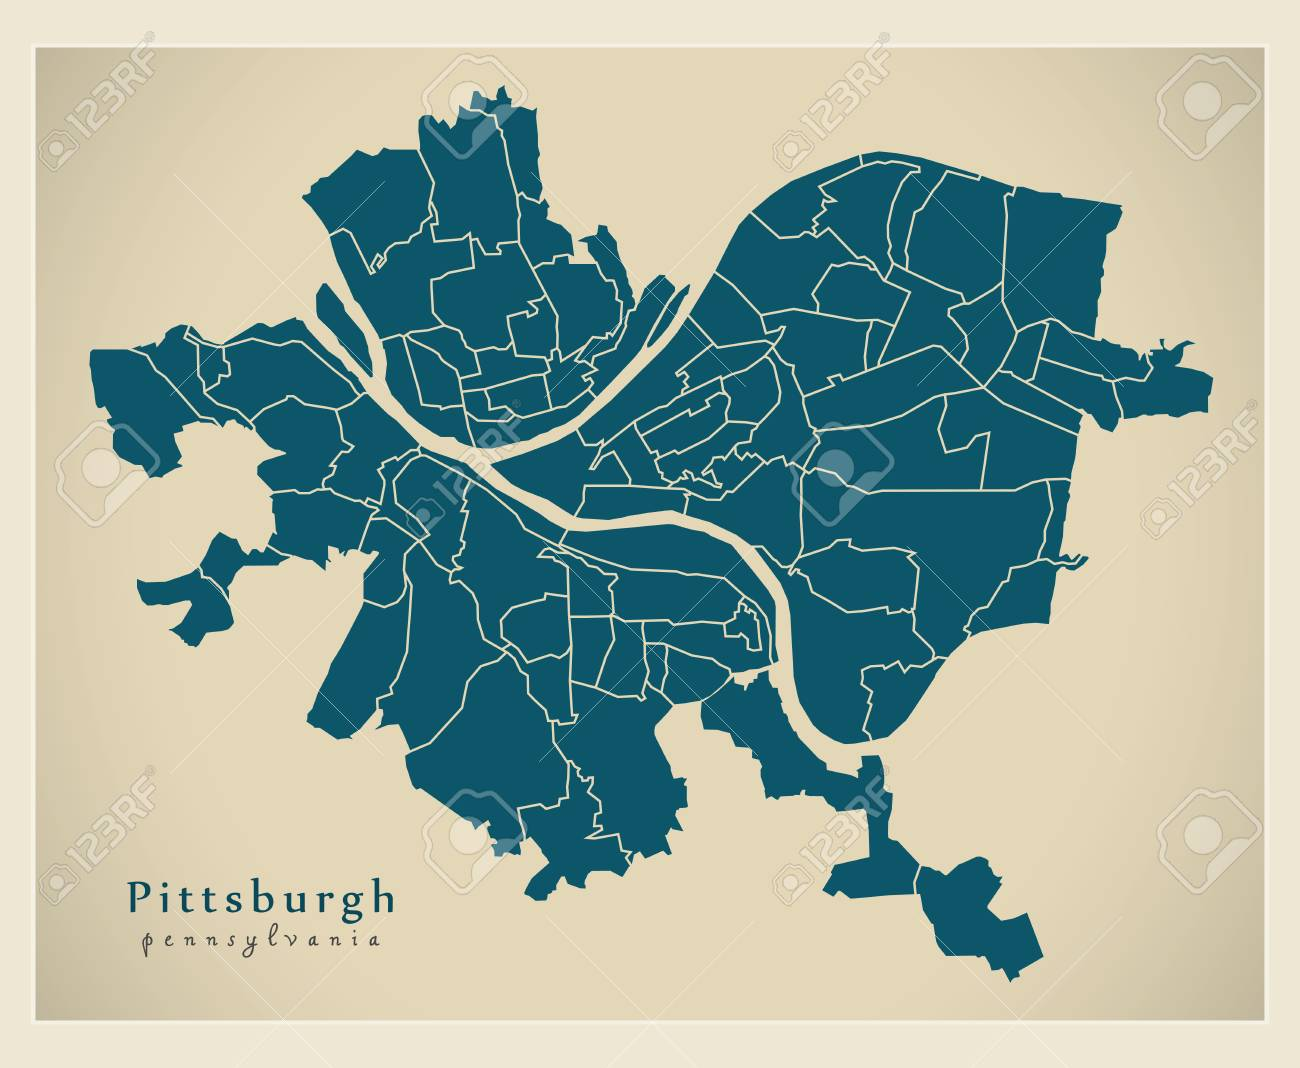 Modern City Map - Pittsburgh Pennsylvania city of the USA with.. on fremont on world map, sun belt on world map, key west on world map, aswan on world map, montreal on world map, san fransisco on world map, omaha on world map, ithaca on world map, nebraska on world map, all cities on world map, donetsk on world map, los angeles on world map, norfolk on world map, aurora on world map, peninsula on world map, salt lake city on world map, dar es salaam on world map, northern mariana islands on world map, dc on world map, golden gate bridge on world map,